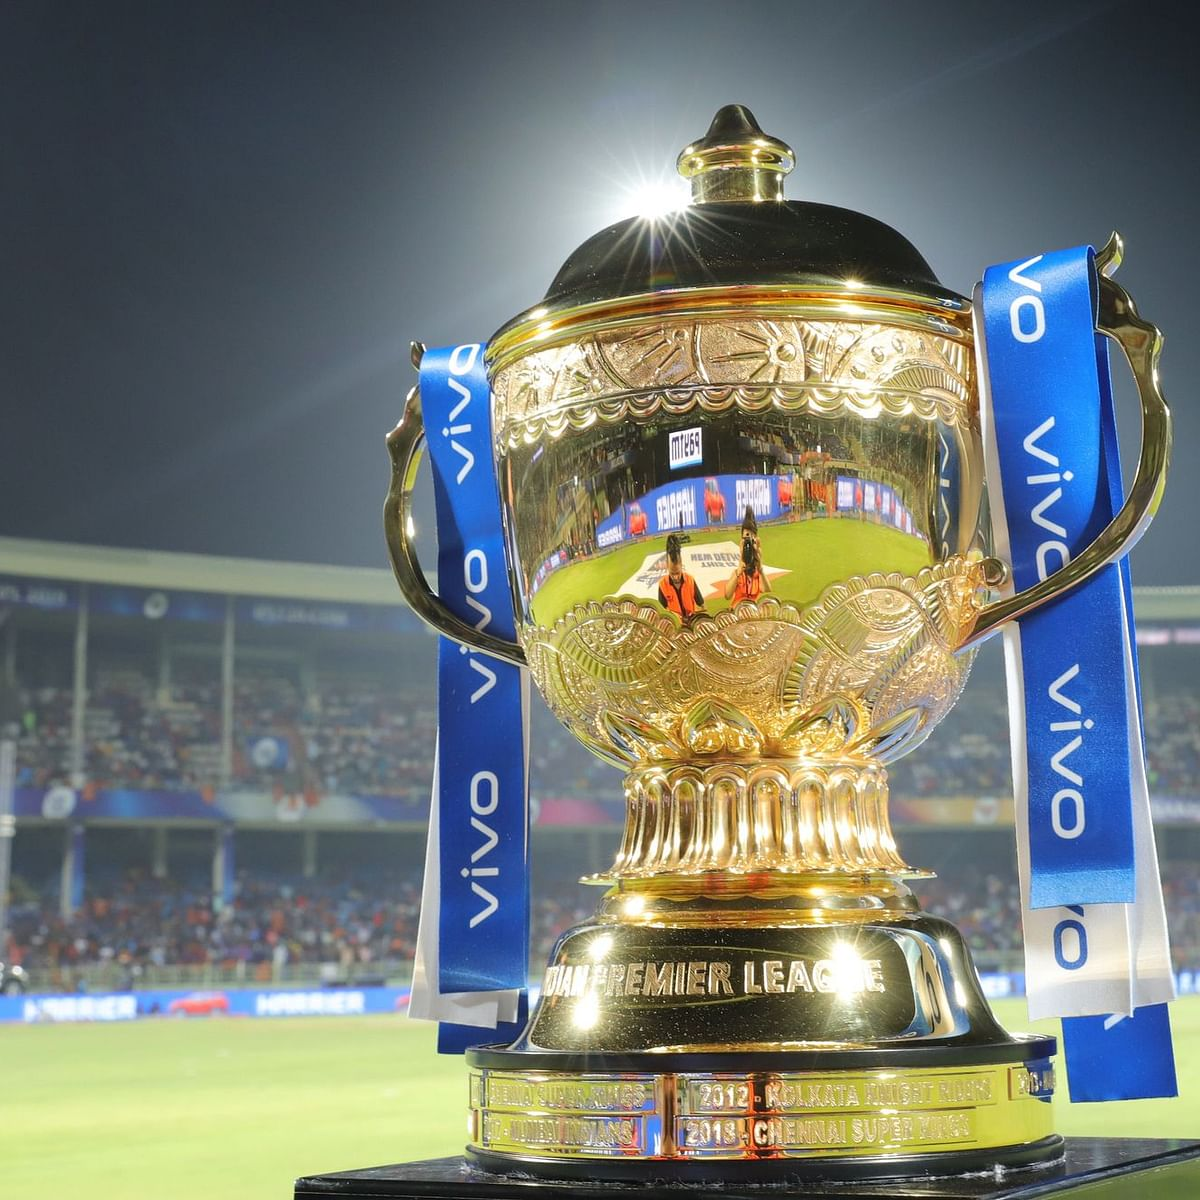 IPL 2020: After Mumbai Indians, which teams can qualify for playoffs?